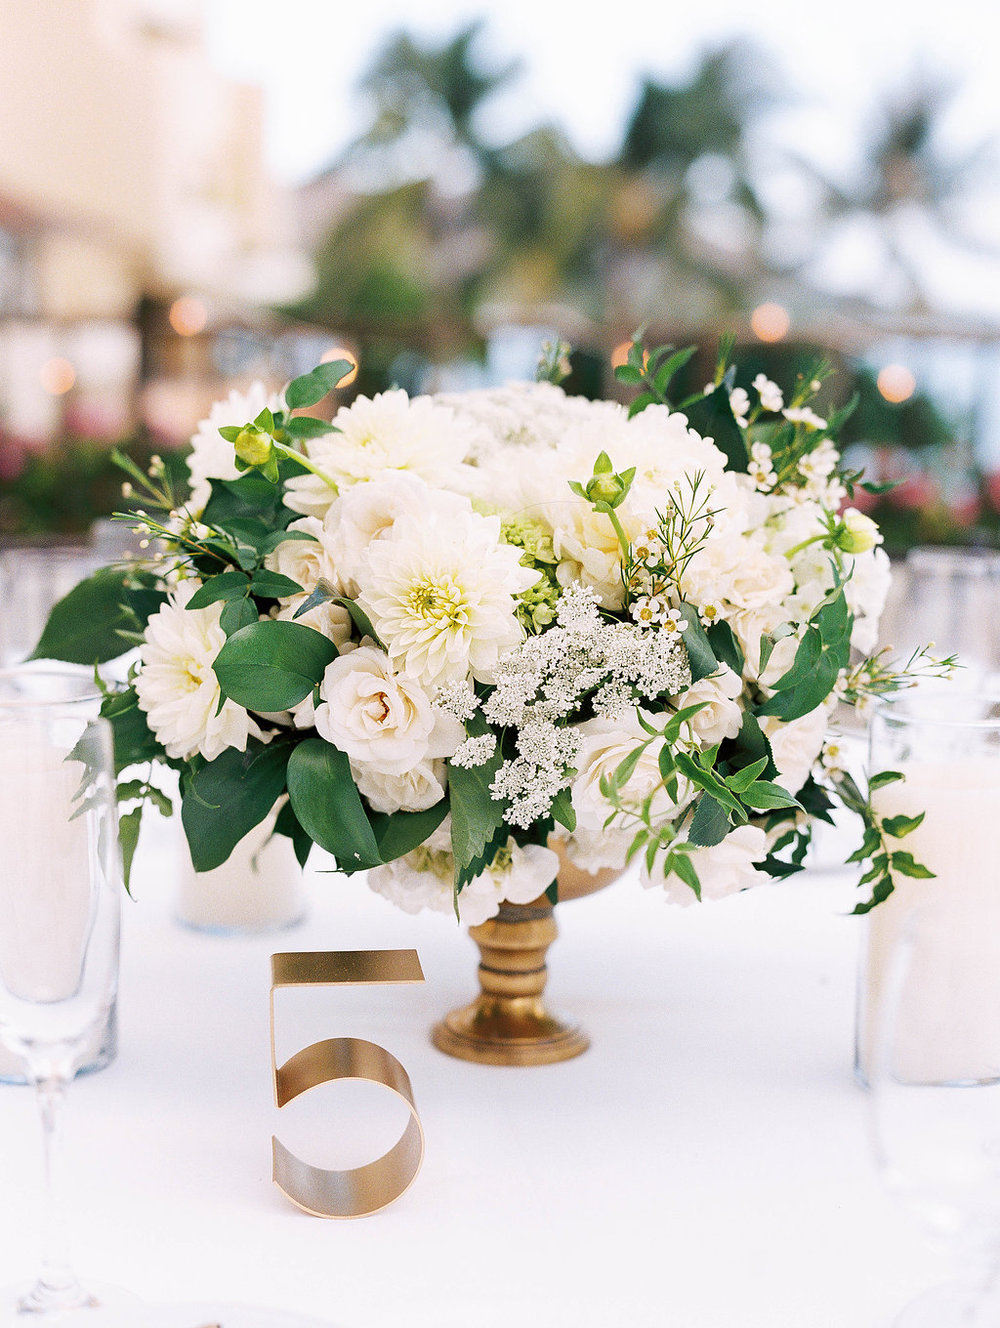 Passion roots oahu hawaii florist centerpieces white and green centerpice by passion roots ashley goodwin photography oahu hawaii junglespirit Images